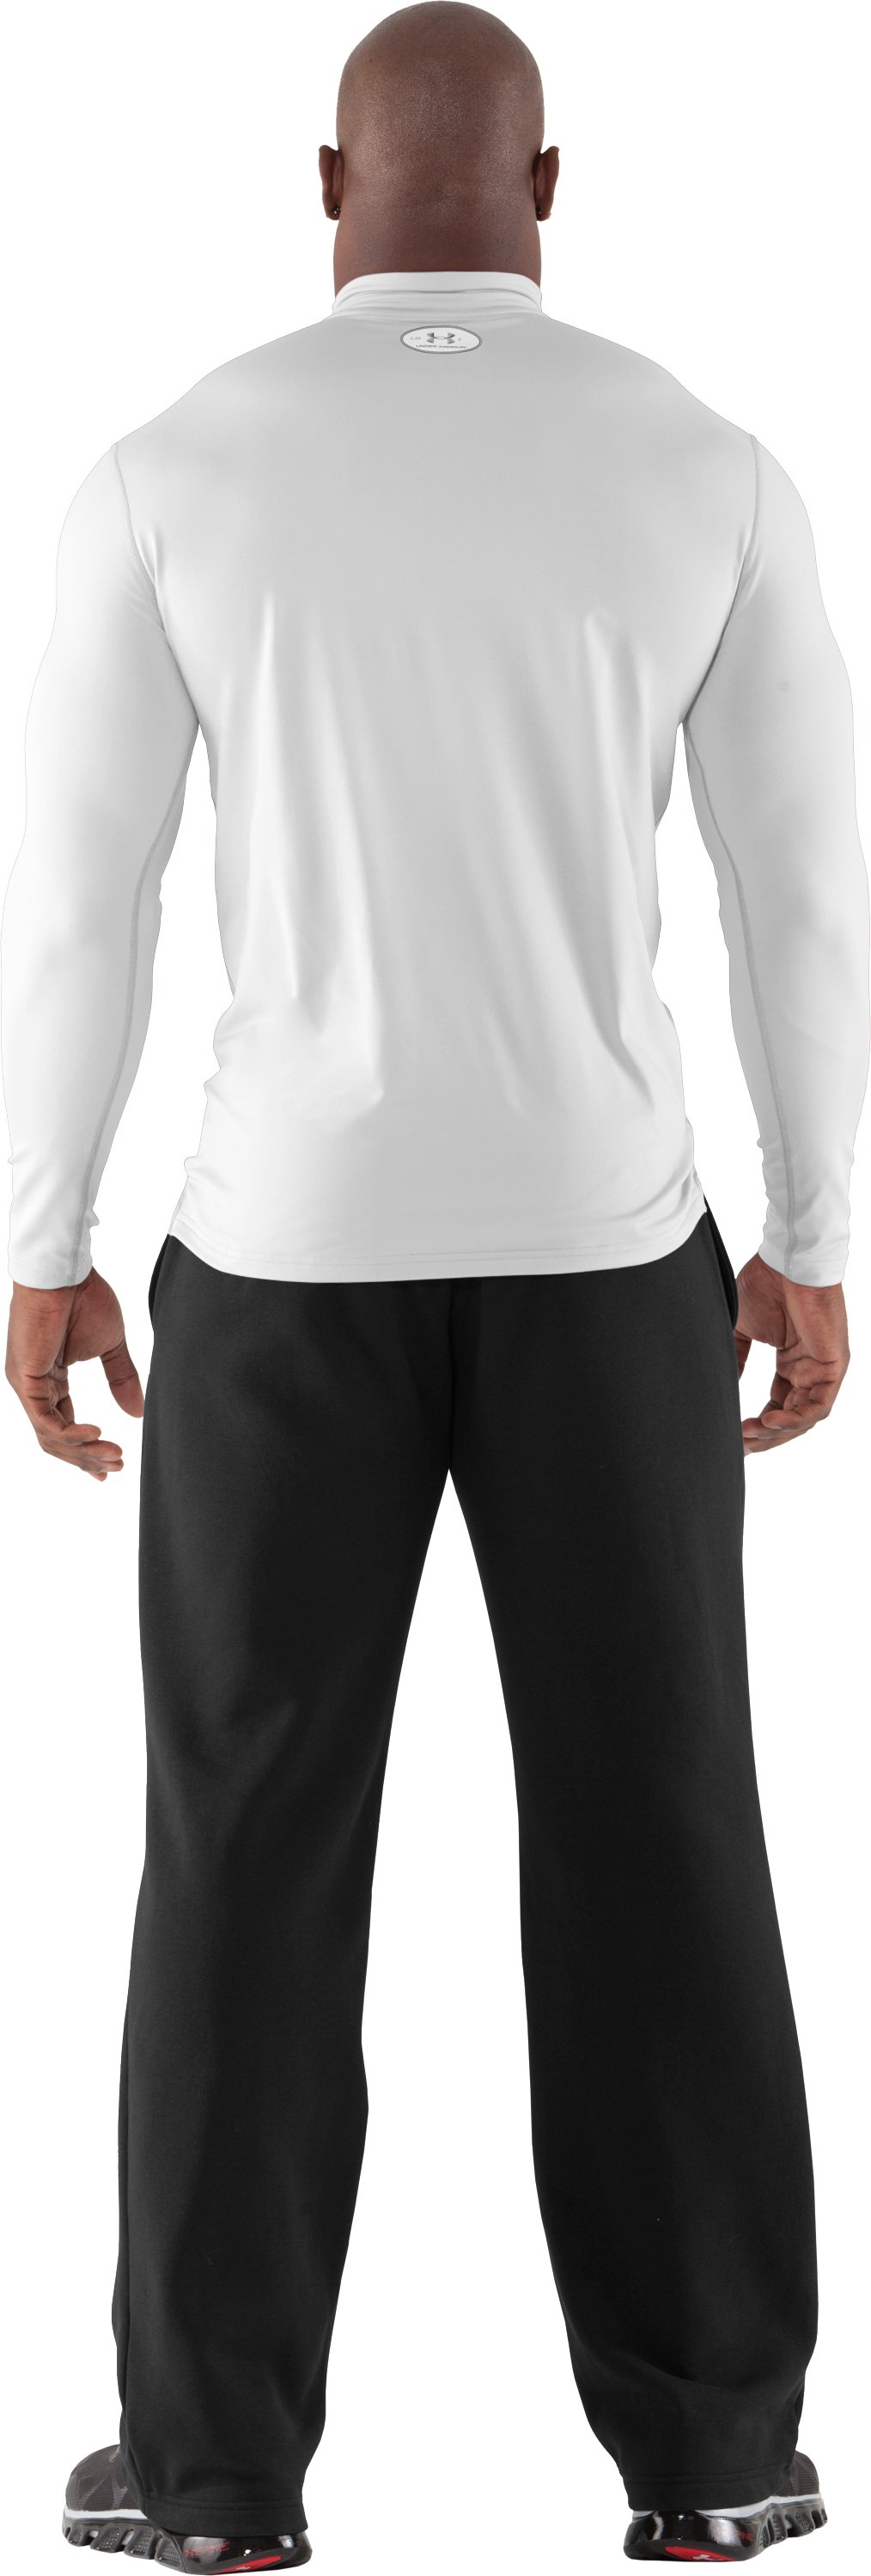 Men's ColdGear® Fitted Long Sleeve Mock, White, Back